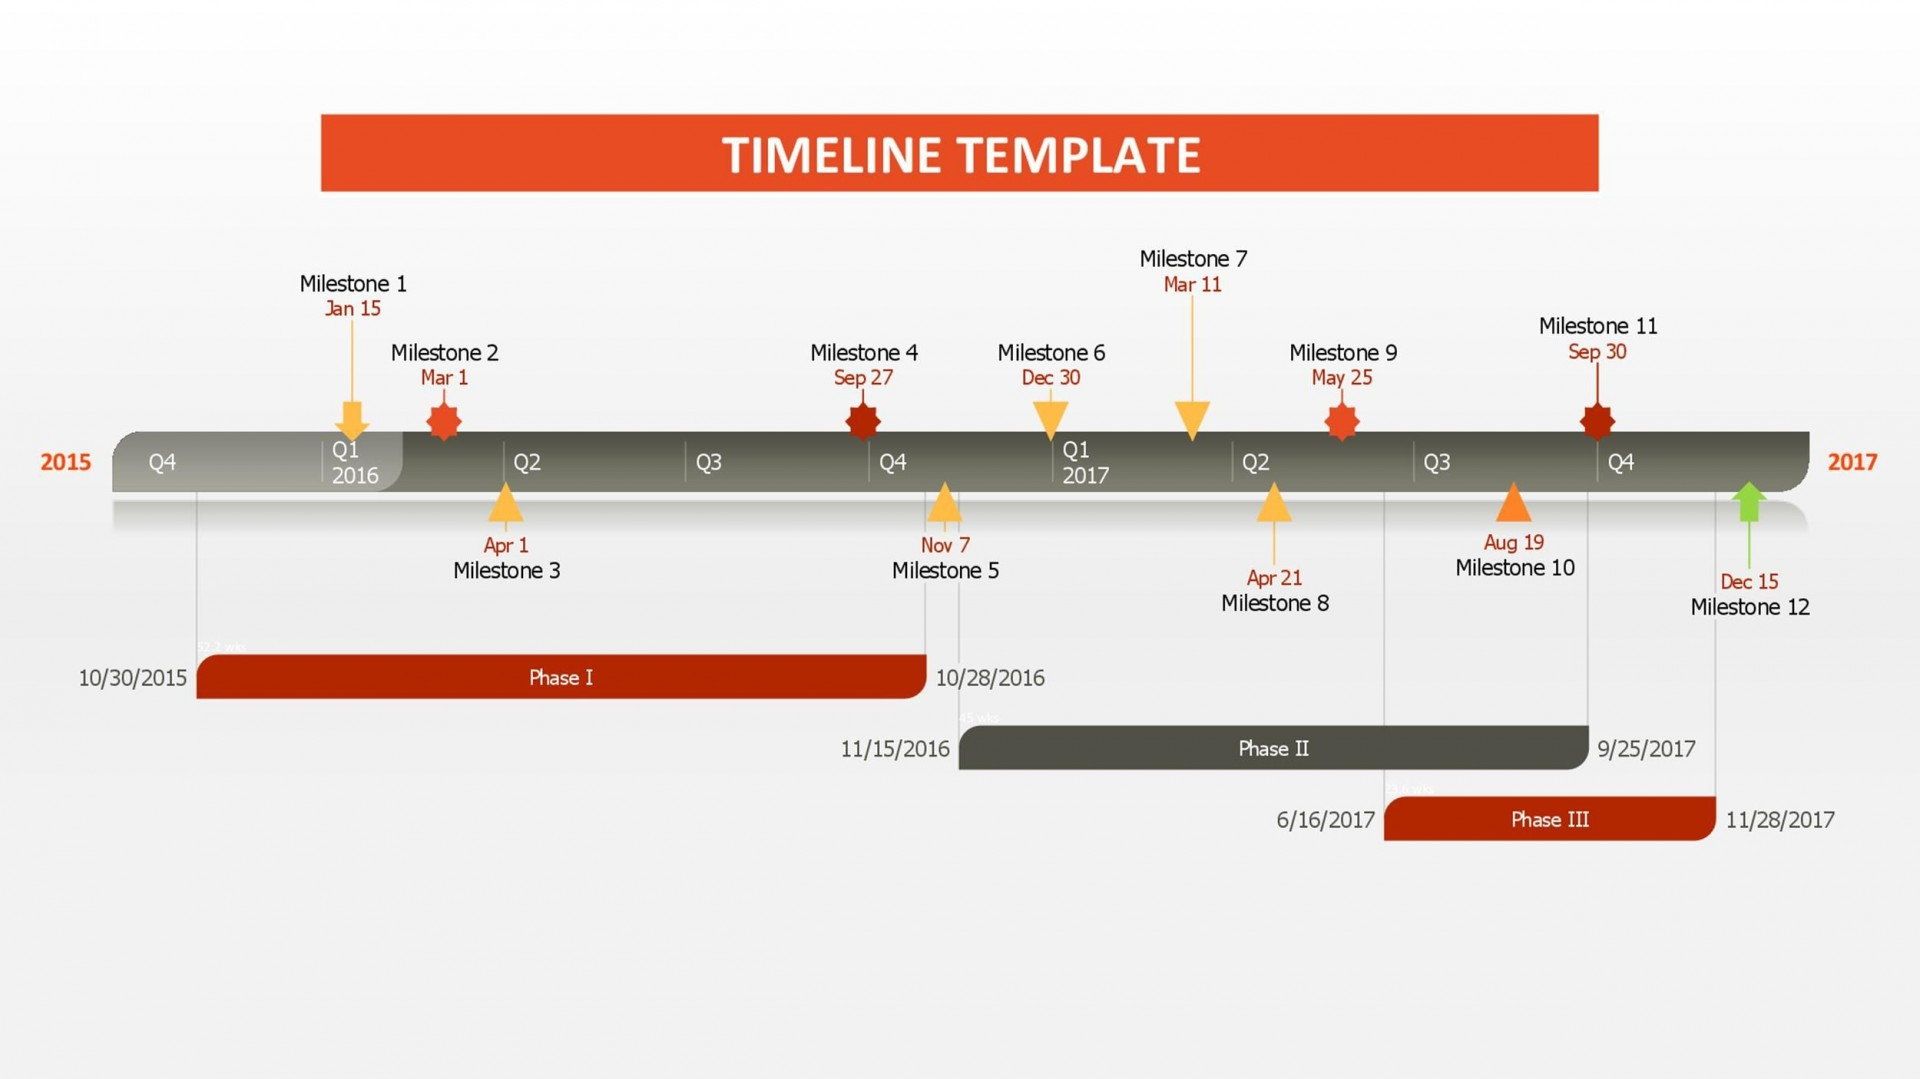 006 Dreaded Timeline Template For Word Idea  Wordpres Free1920